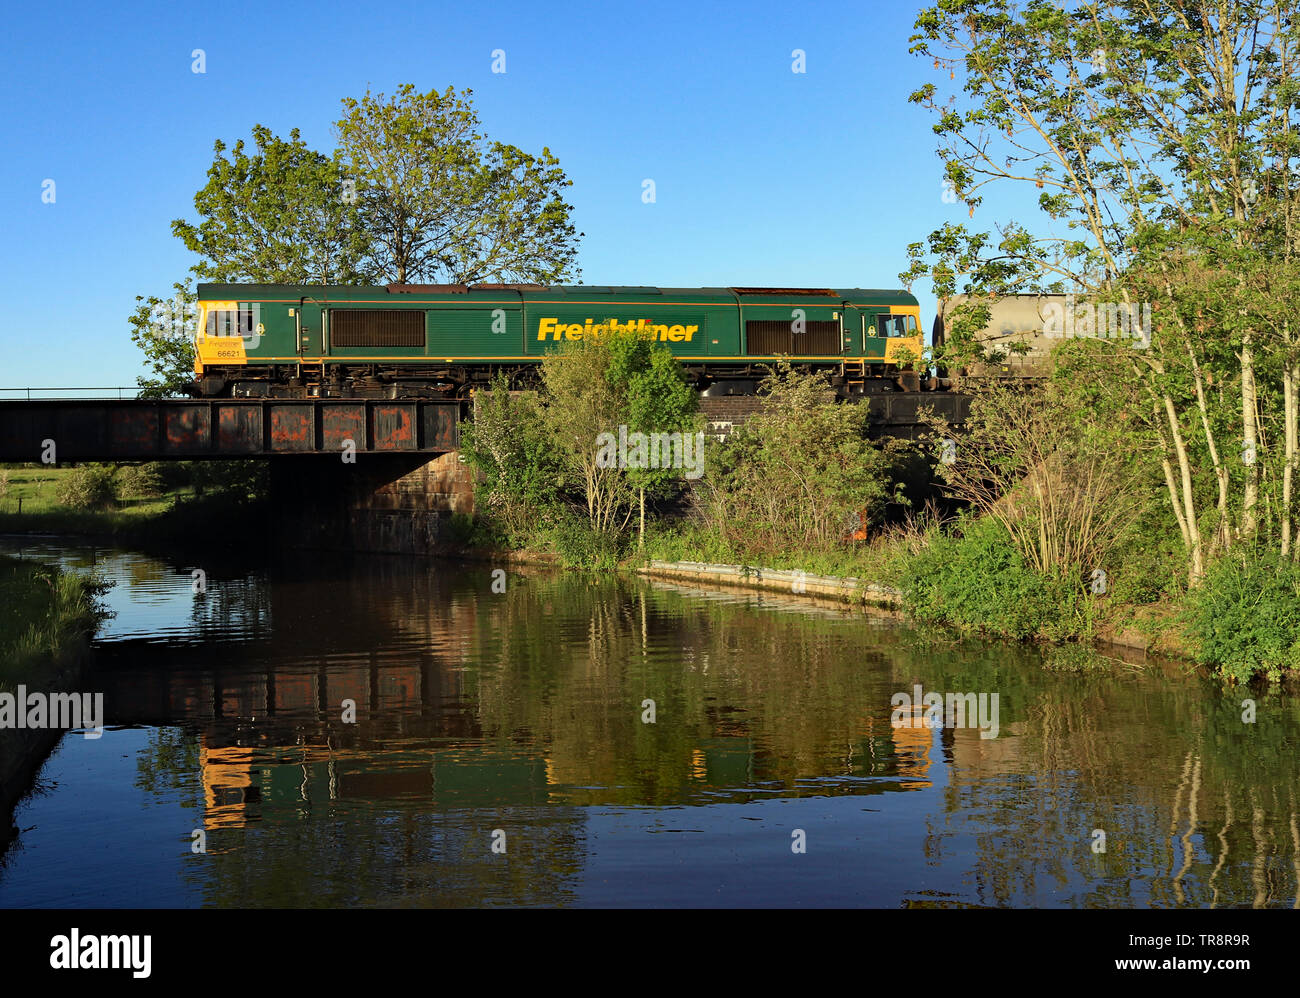 Green Freightliner diesel locomotive 66621is reflected in the water as it crosses the Trent and Mersey canal travelling along the Middlewich line. - Stock Image